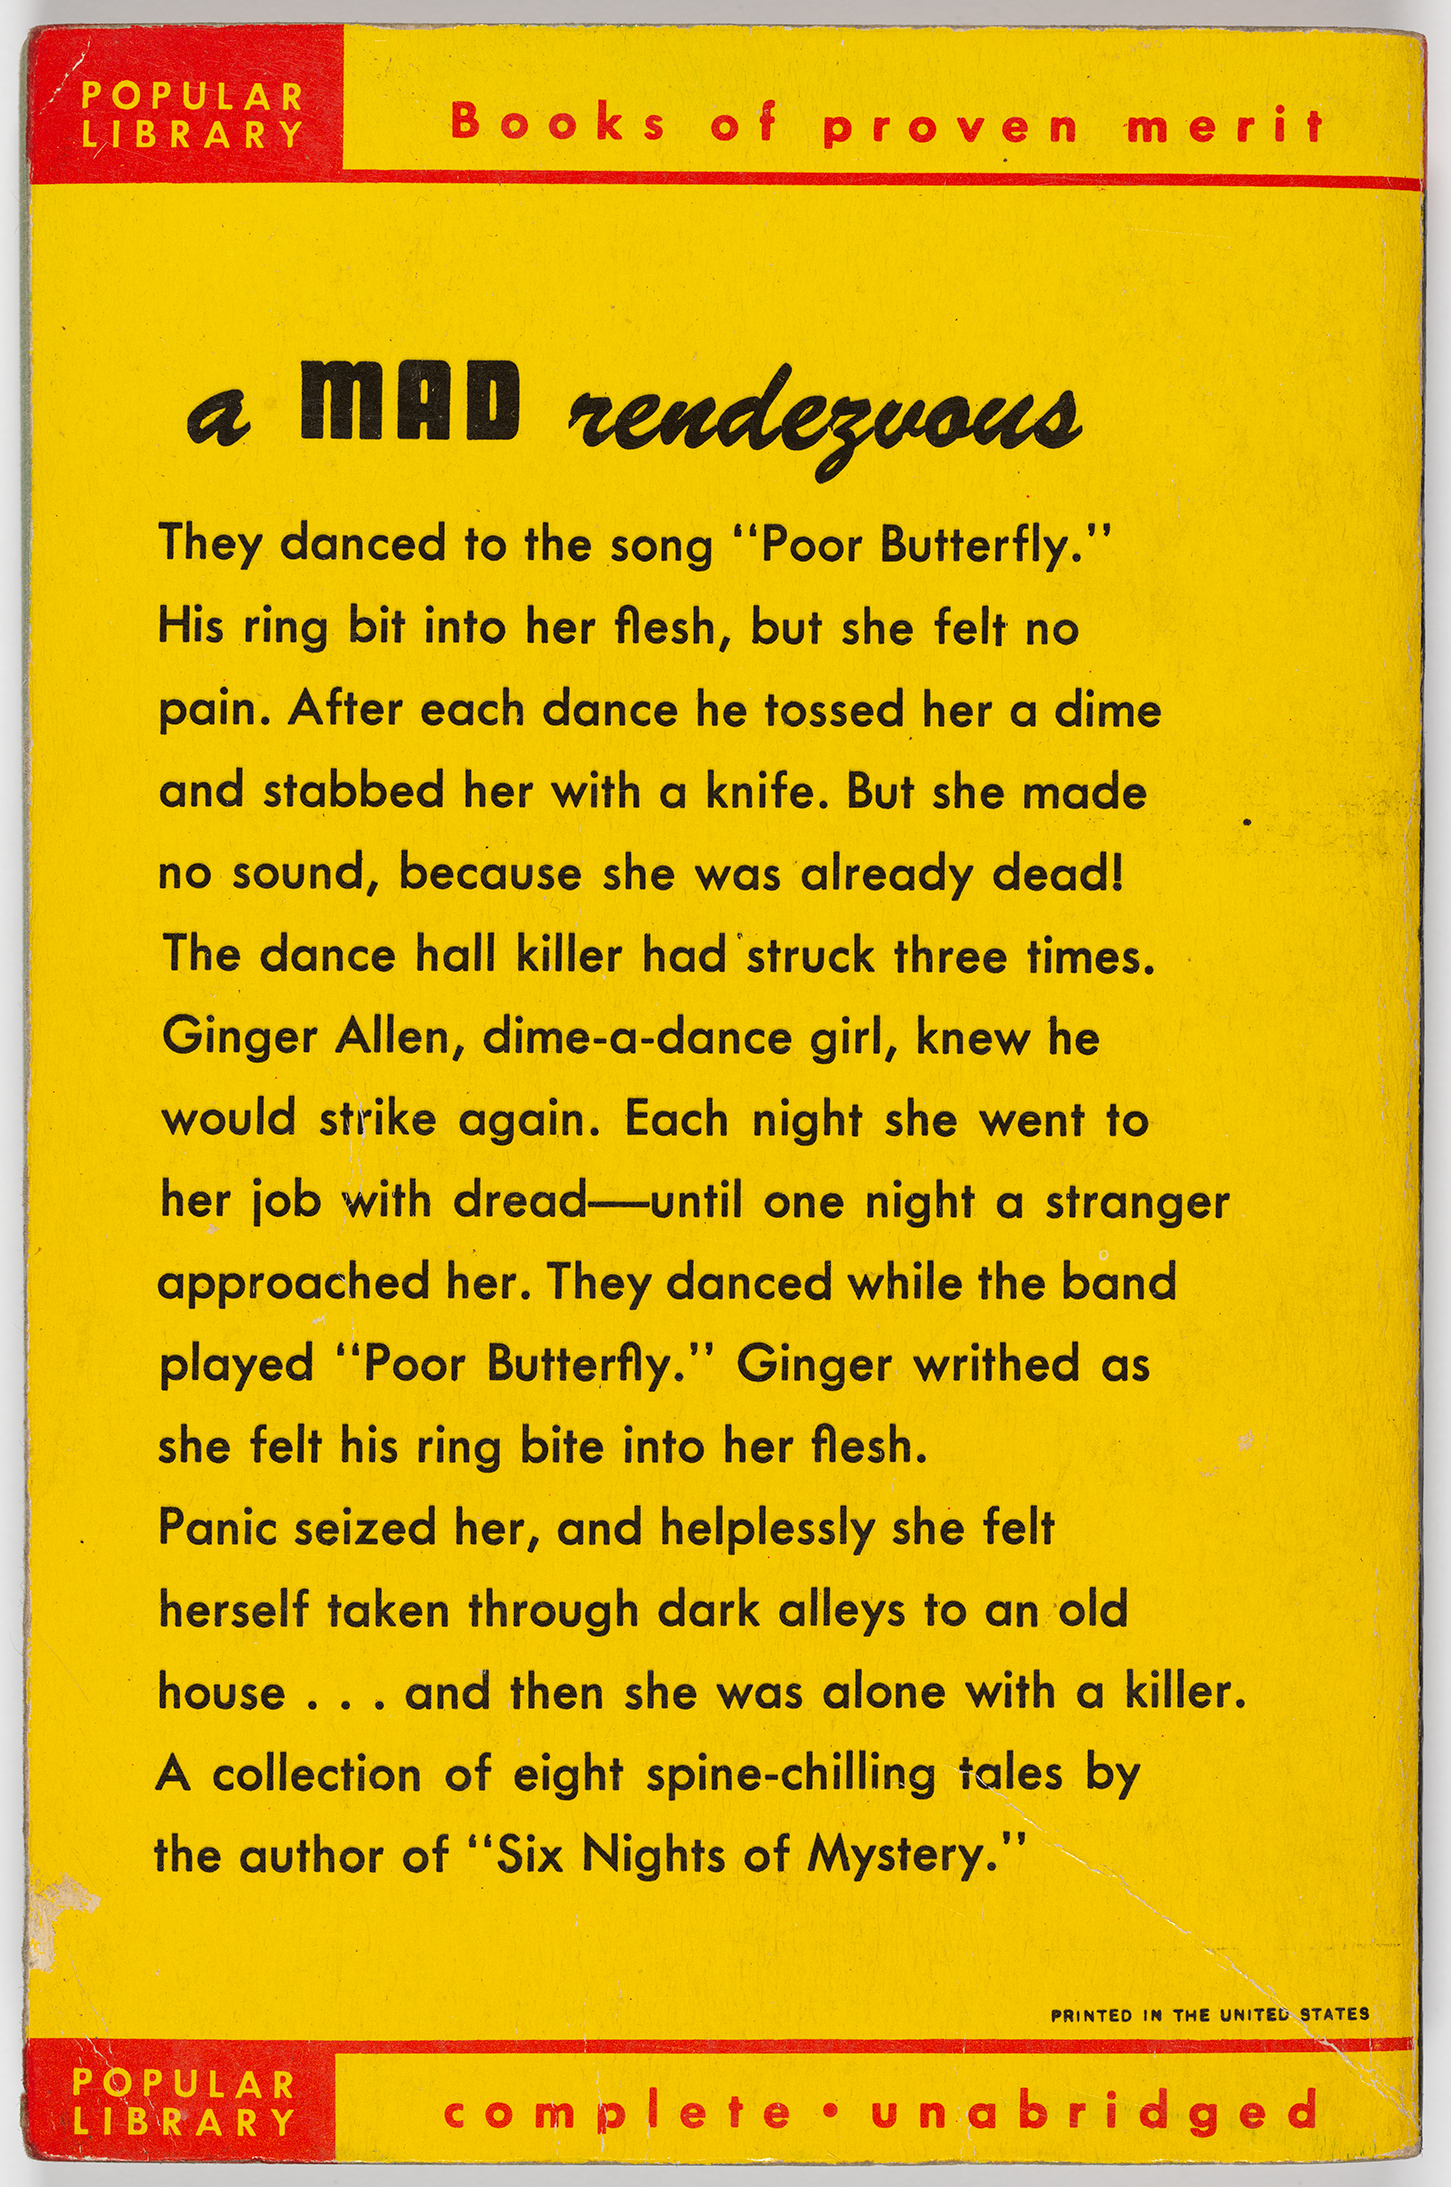 "The back cover describes the content of one of the stories from The Dancing Detective: ""A mad rendezvous … The dance hall killer had struck three times. Ginger Allen, dance-a-dime girl, knew he would strike again. Each night she went to her job with dread—until one night a stranger approached her … A collection of eight spine-chilling tales by the author of 'Six Nights of Mystery.'"""